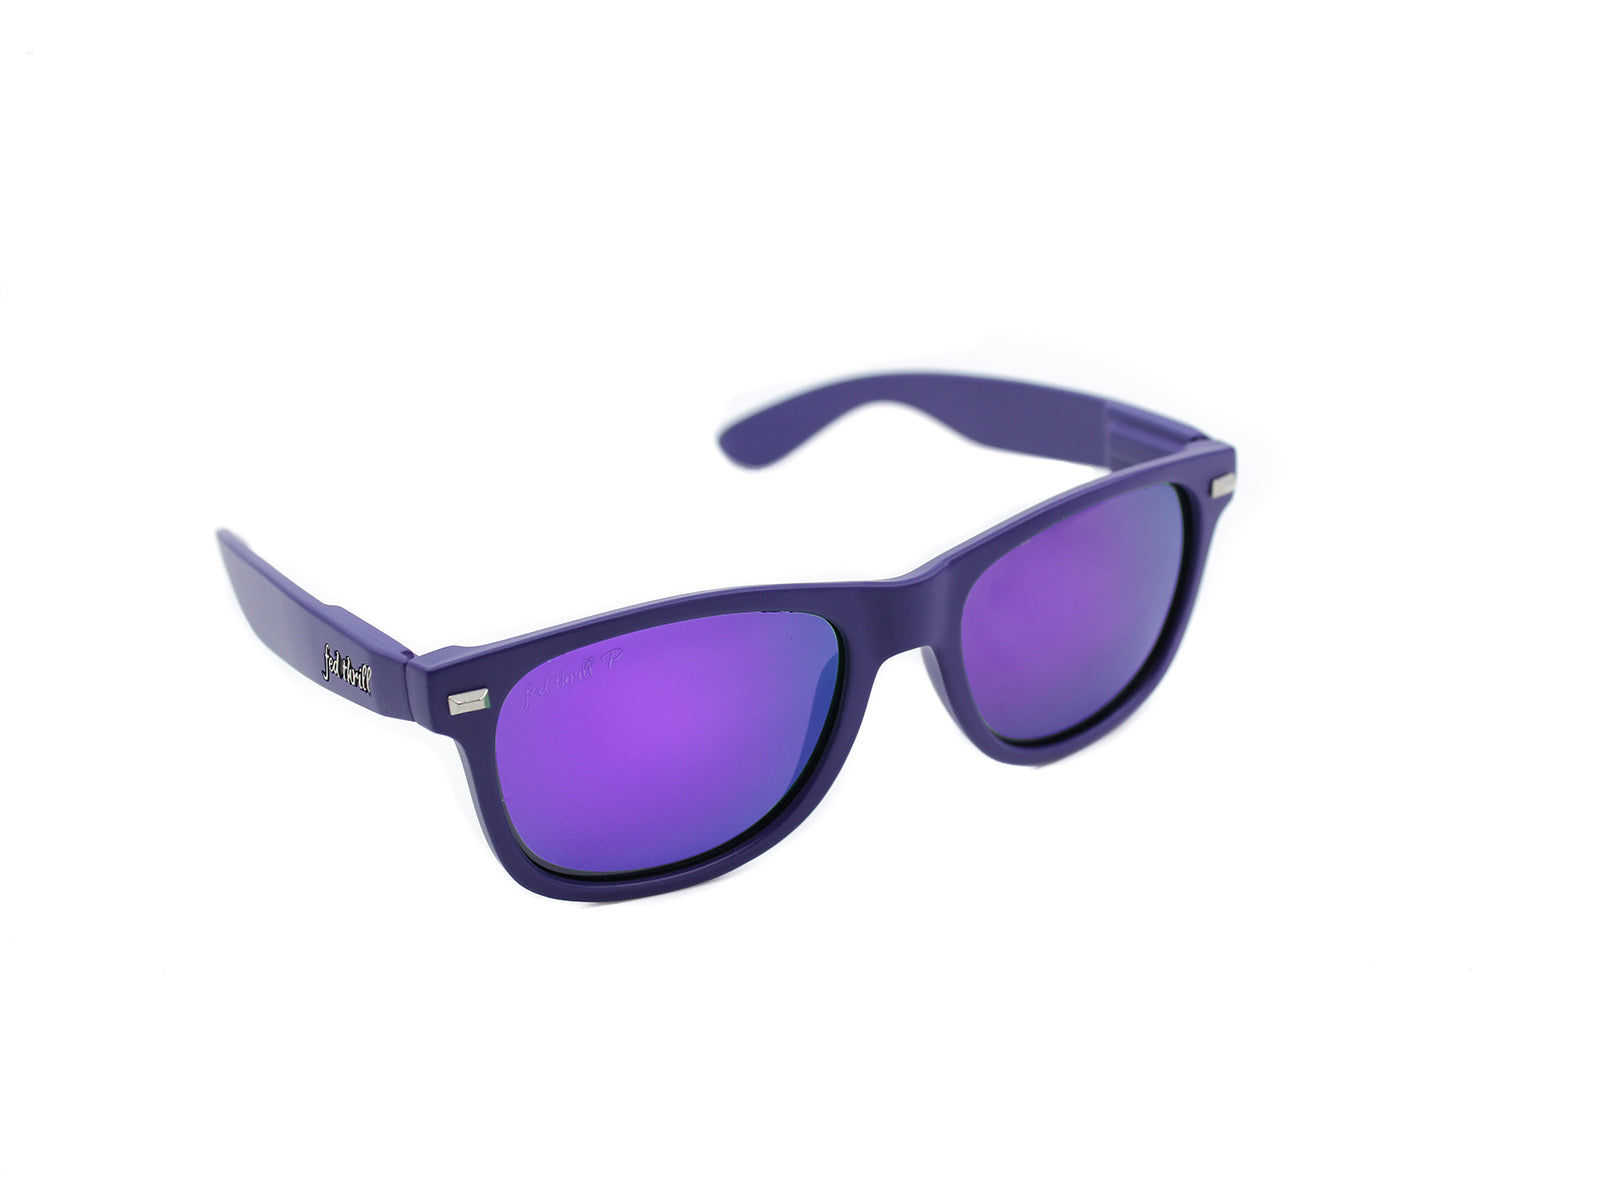 Fultons - Eggplants: Purple / Mirrored Purple Polarized